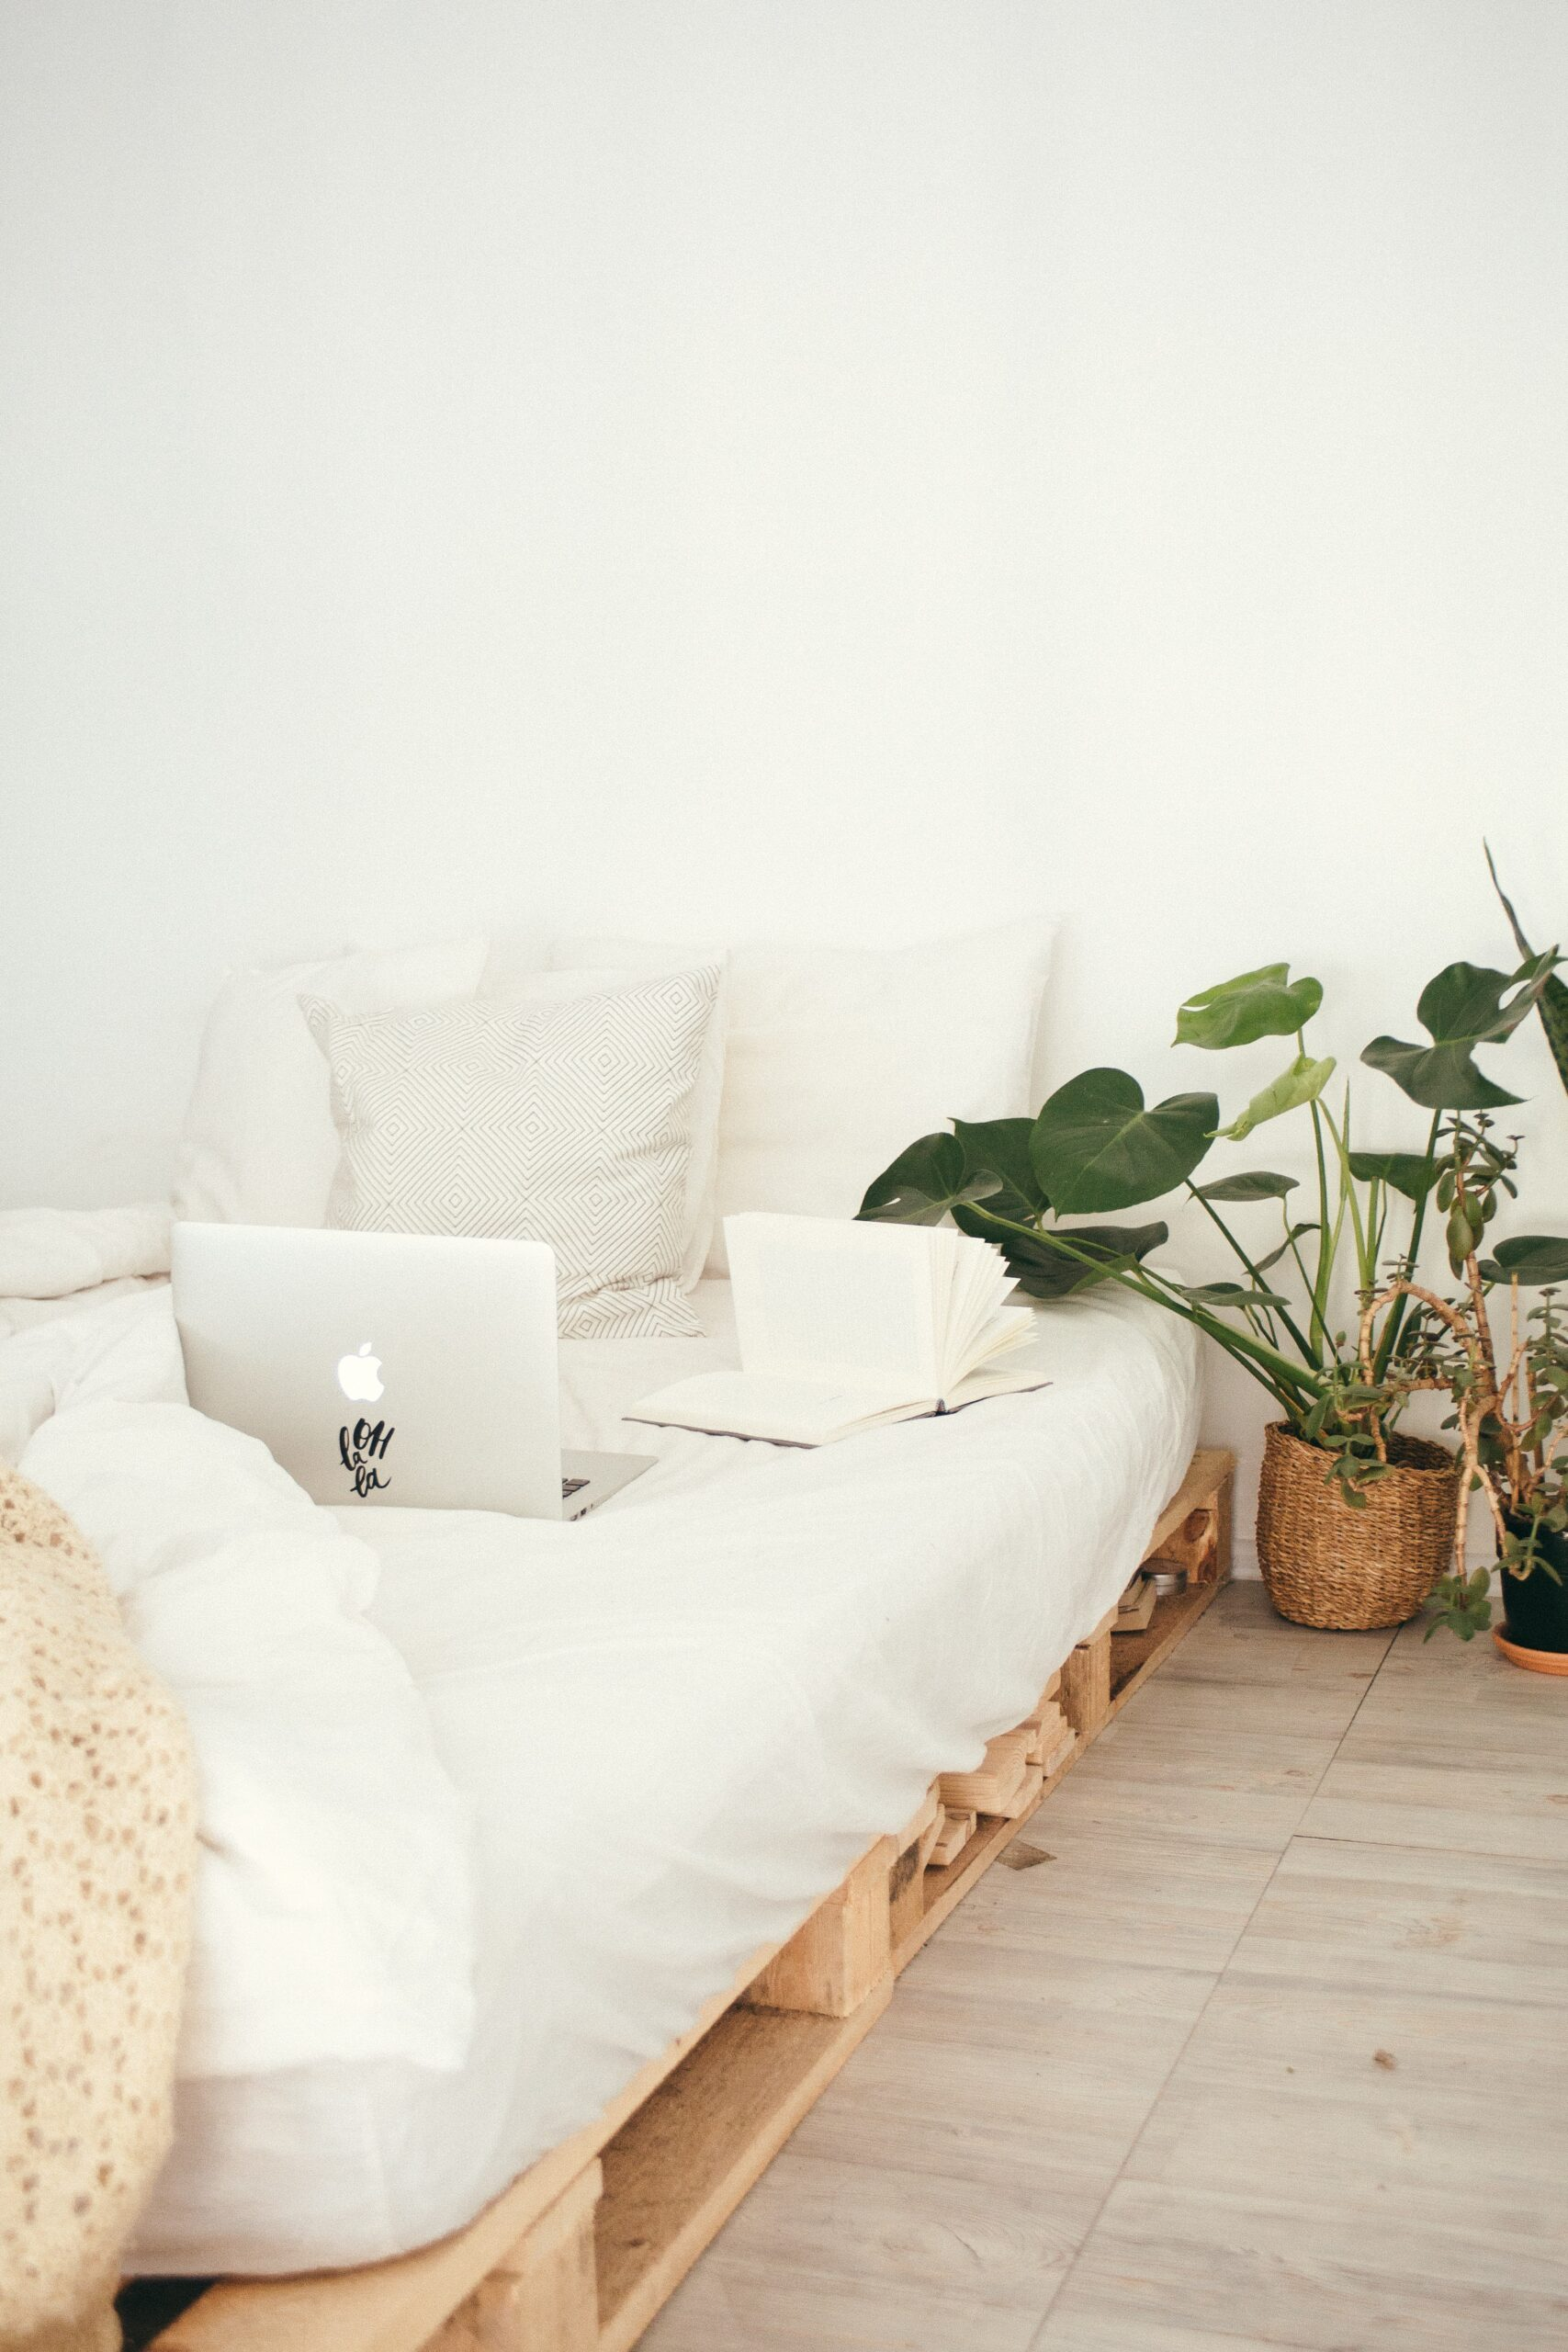 A white bed on wooden pallettes with a macbook laptop and notebook. Green plant beside the bed.